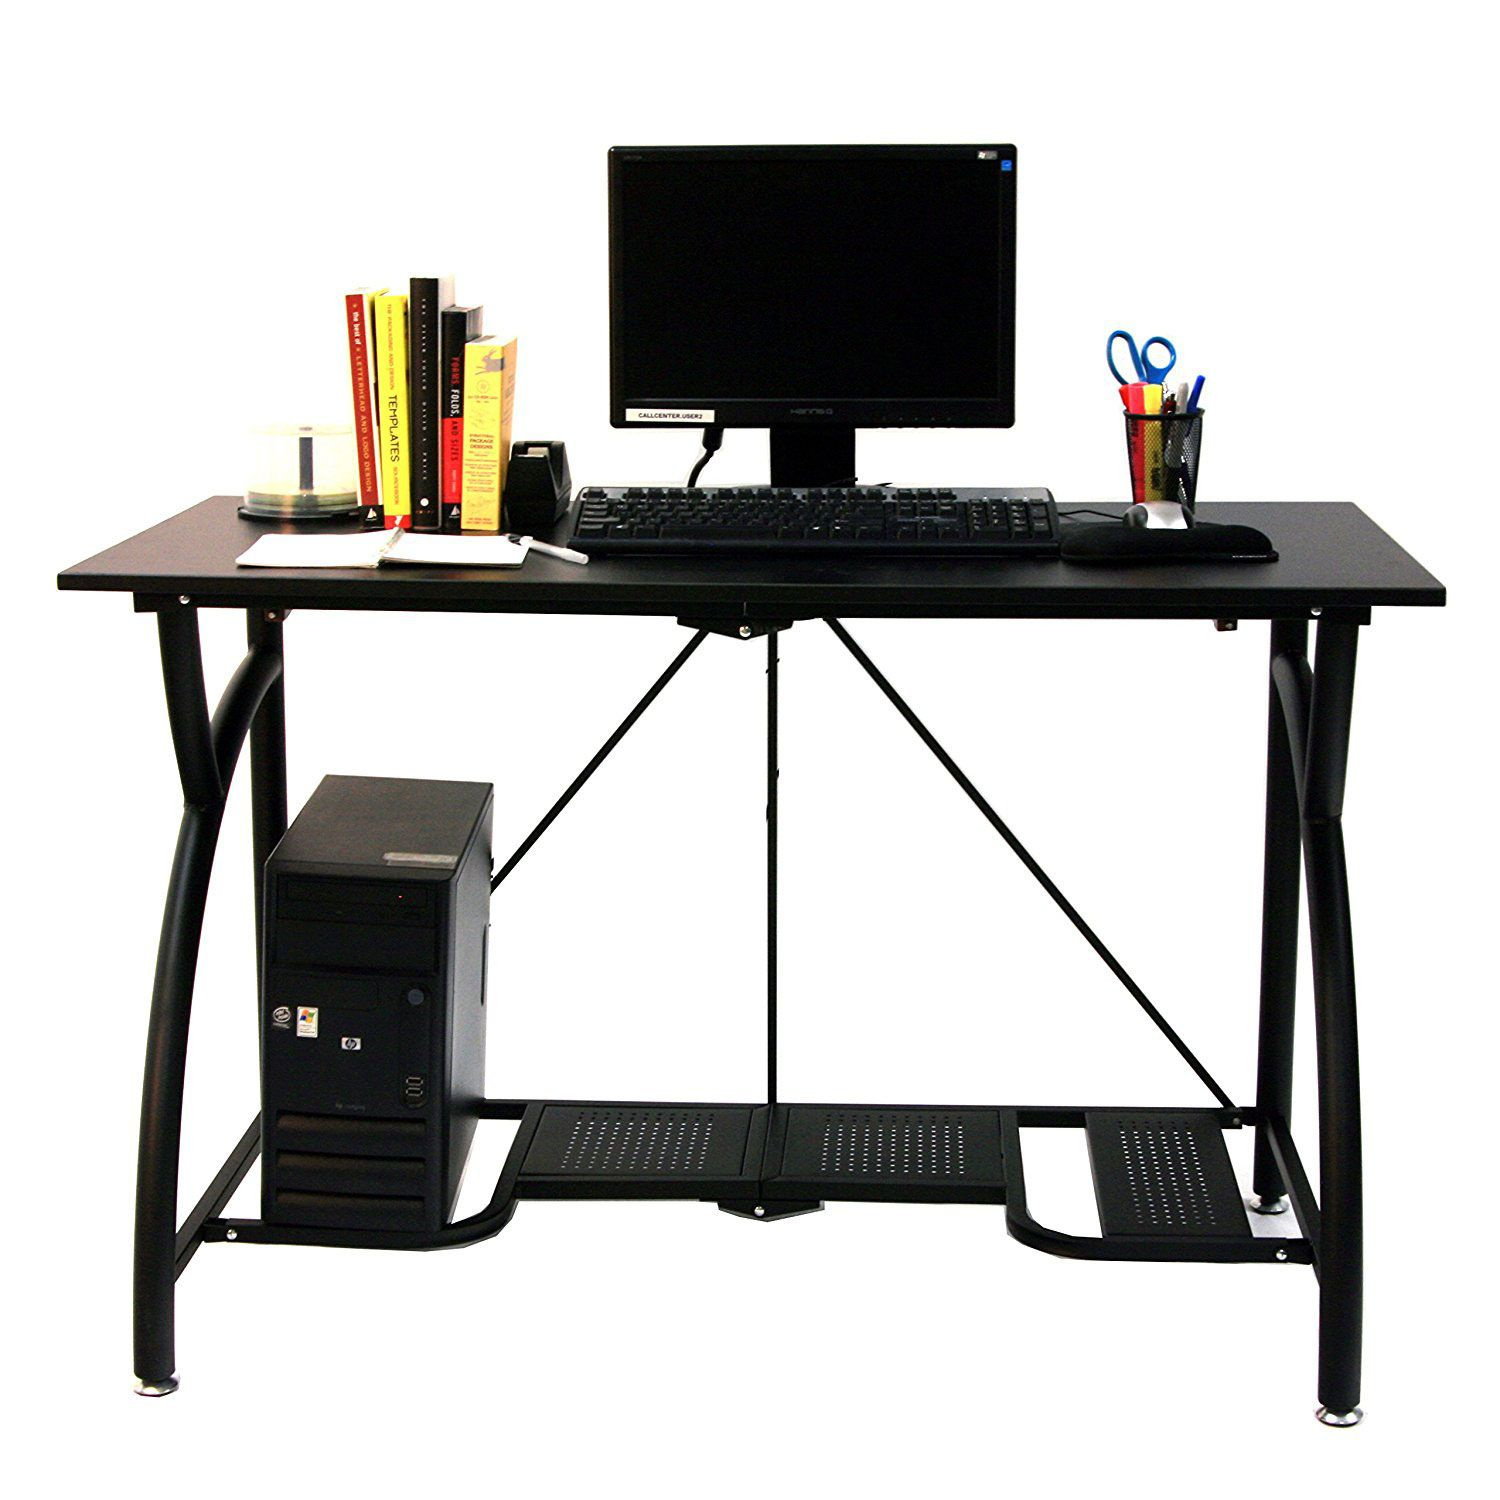 Origami Foldable Computer Desk In Black It S Easy To Fold Up And Store Can Hold All Of You Best Home Office Desk Folding Computer Desk Computer Desks For Home